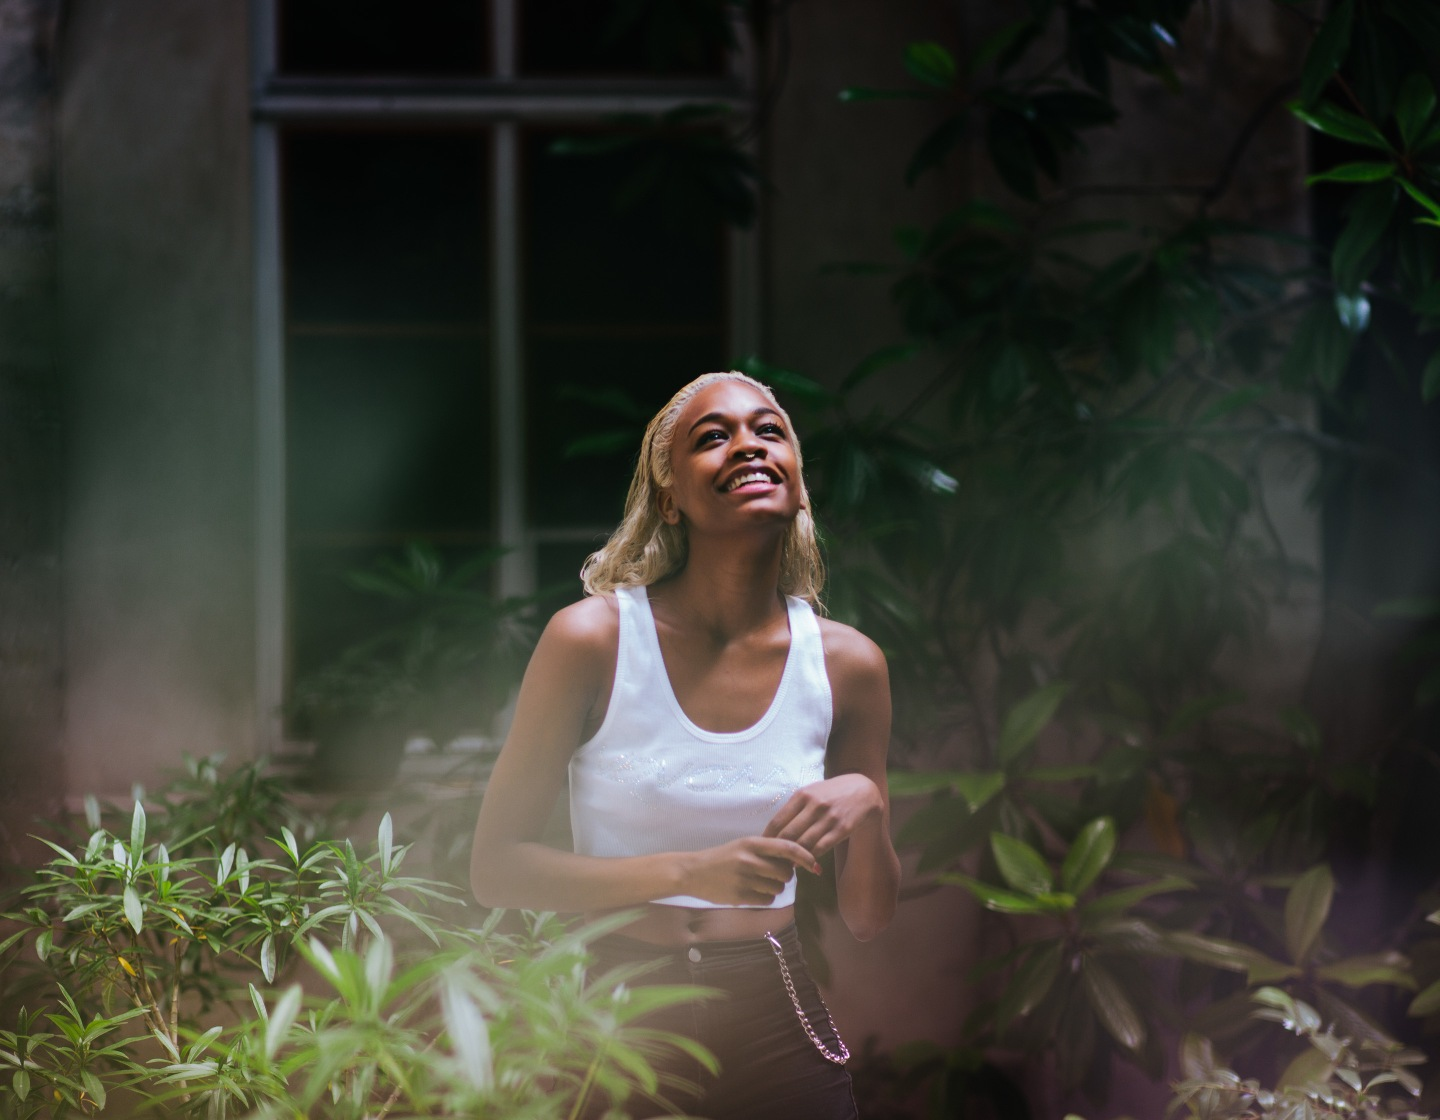 Meet Abra, The Bedroom R&B Singer Who's Not Afraid To Celebrate Herself